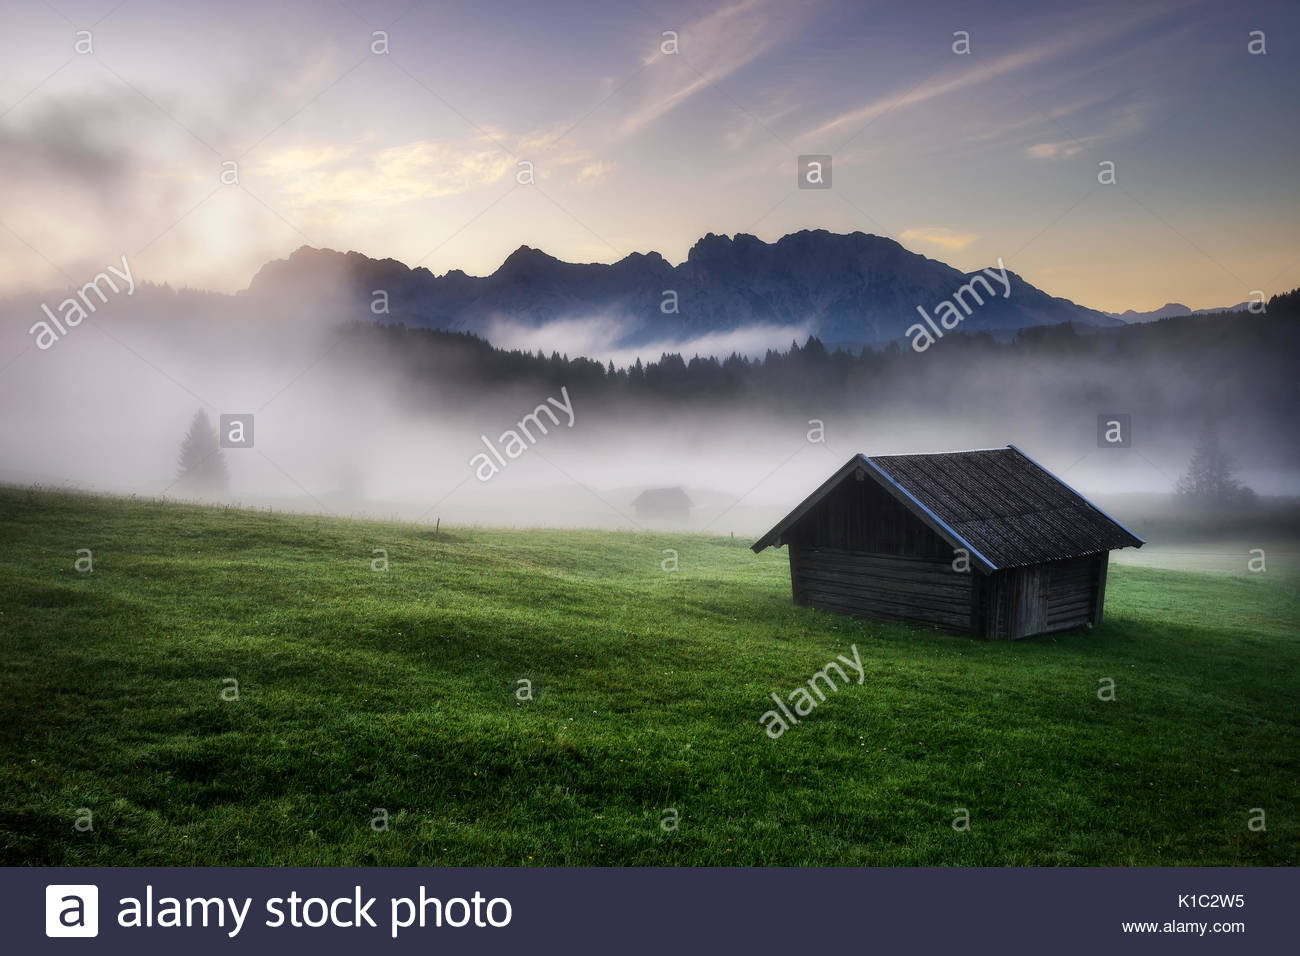 Geroldsee forest during summer day with beautiful foggy sunrise over mountain peaks, Bavarian Alps, Bavaria, Germany. - Stock Image